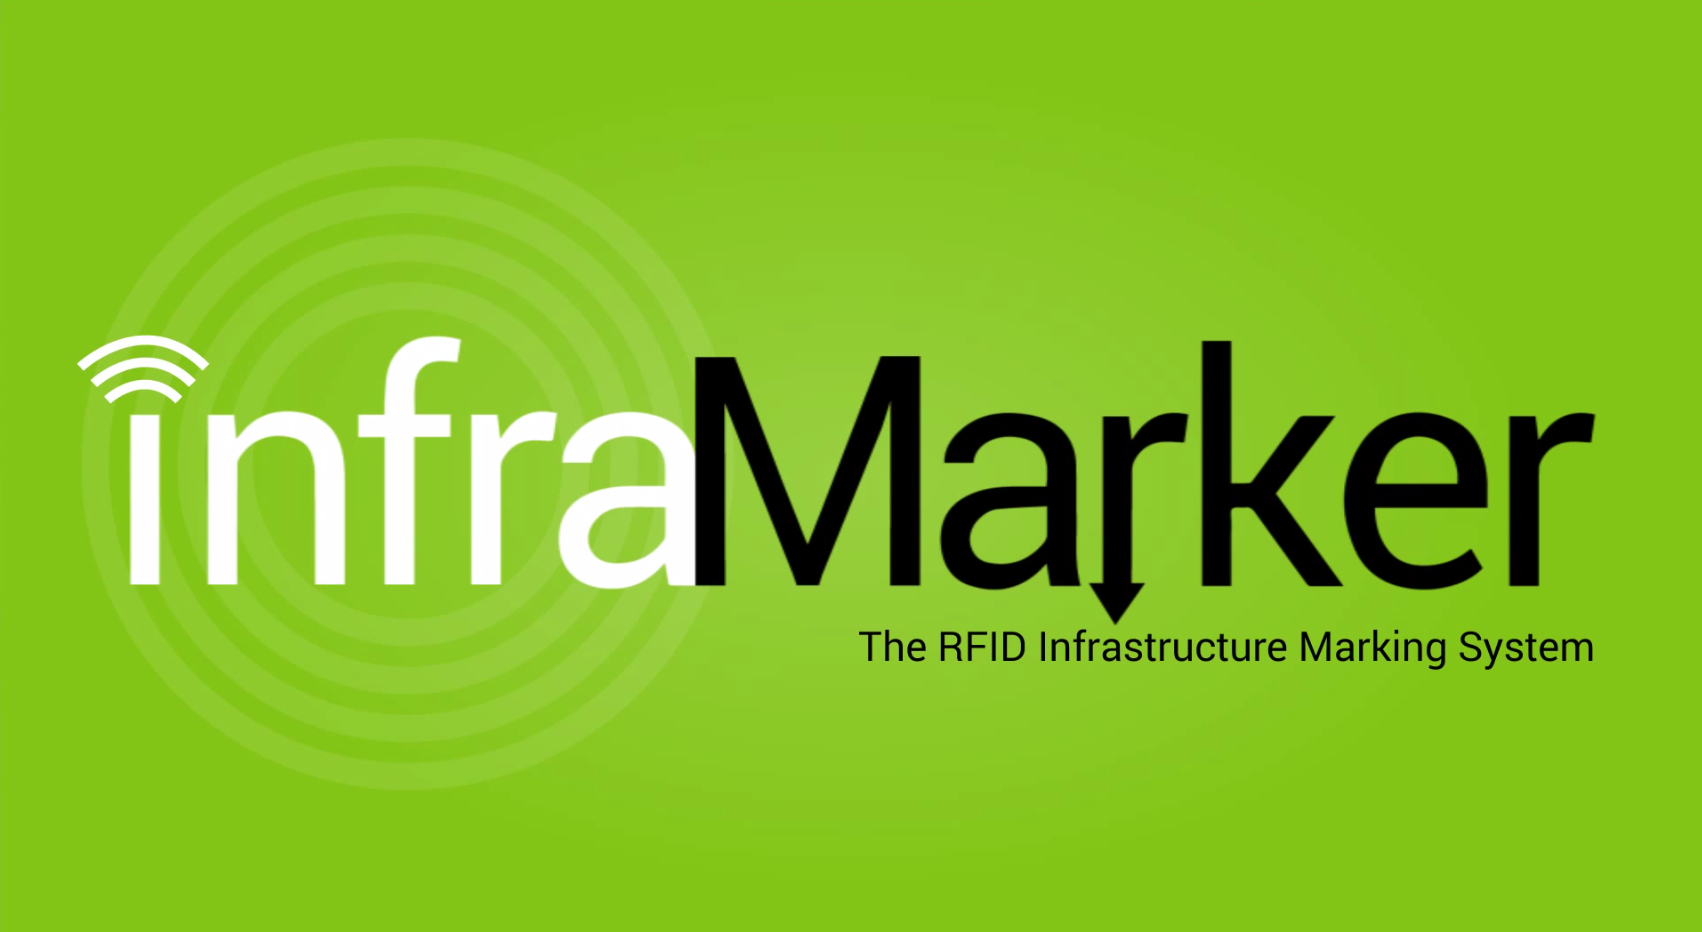 InfraMarker Introductory Video Series